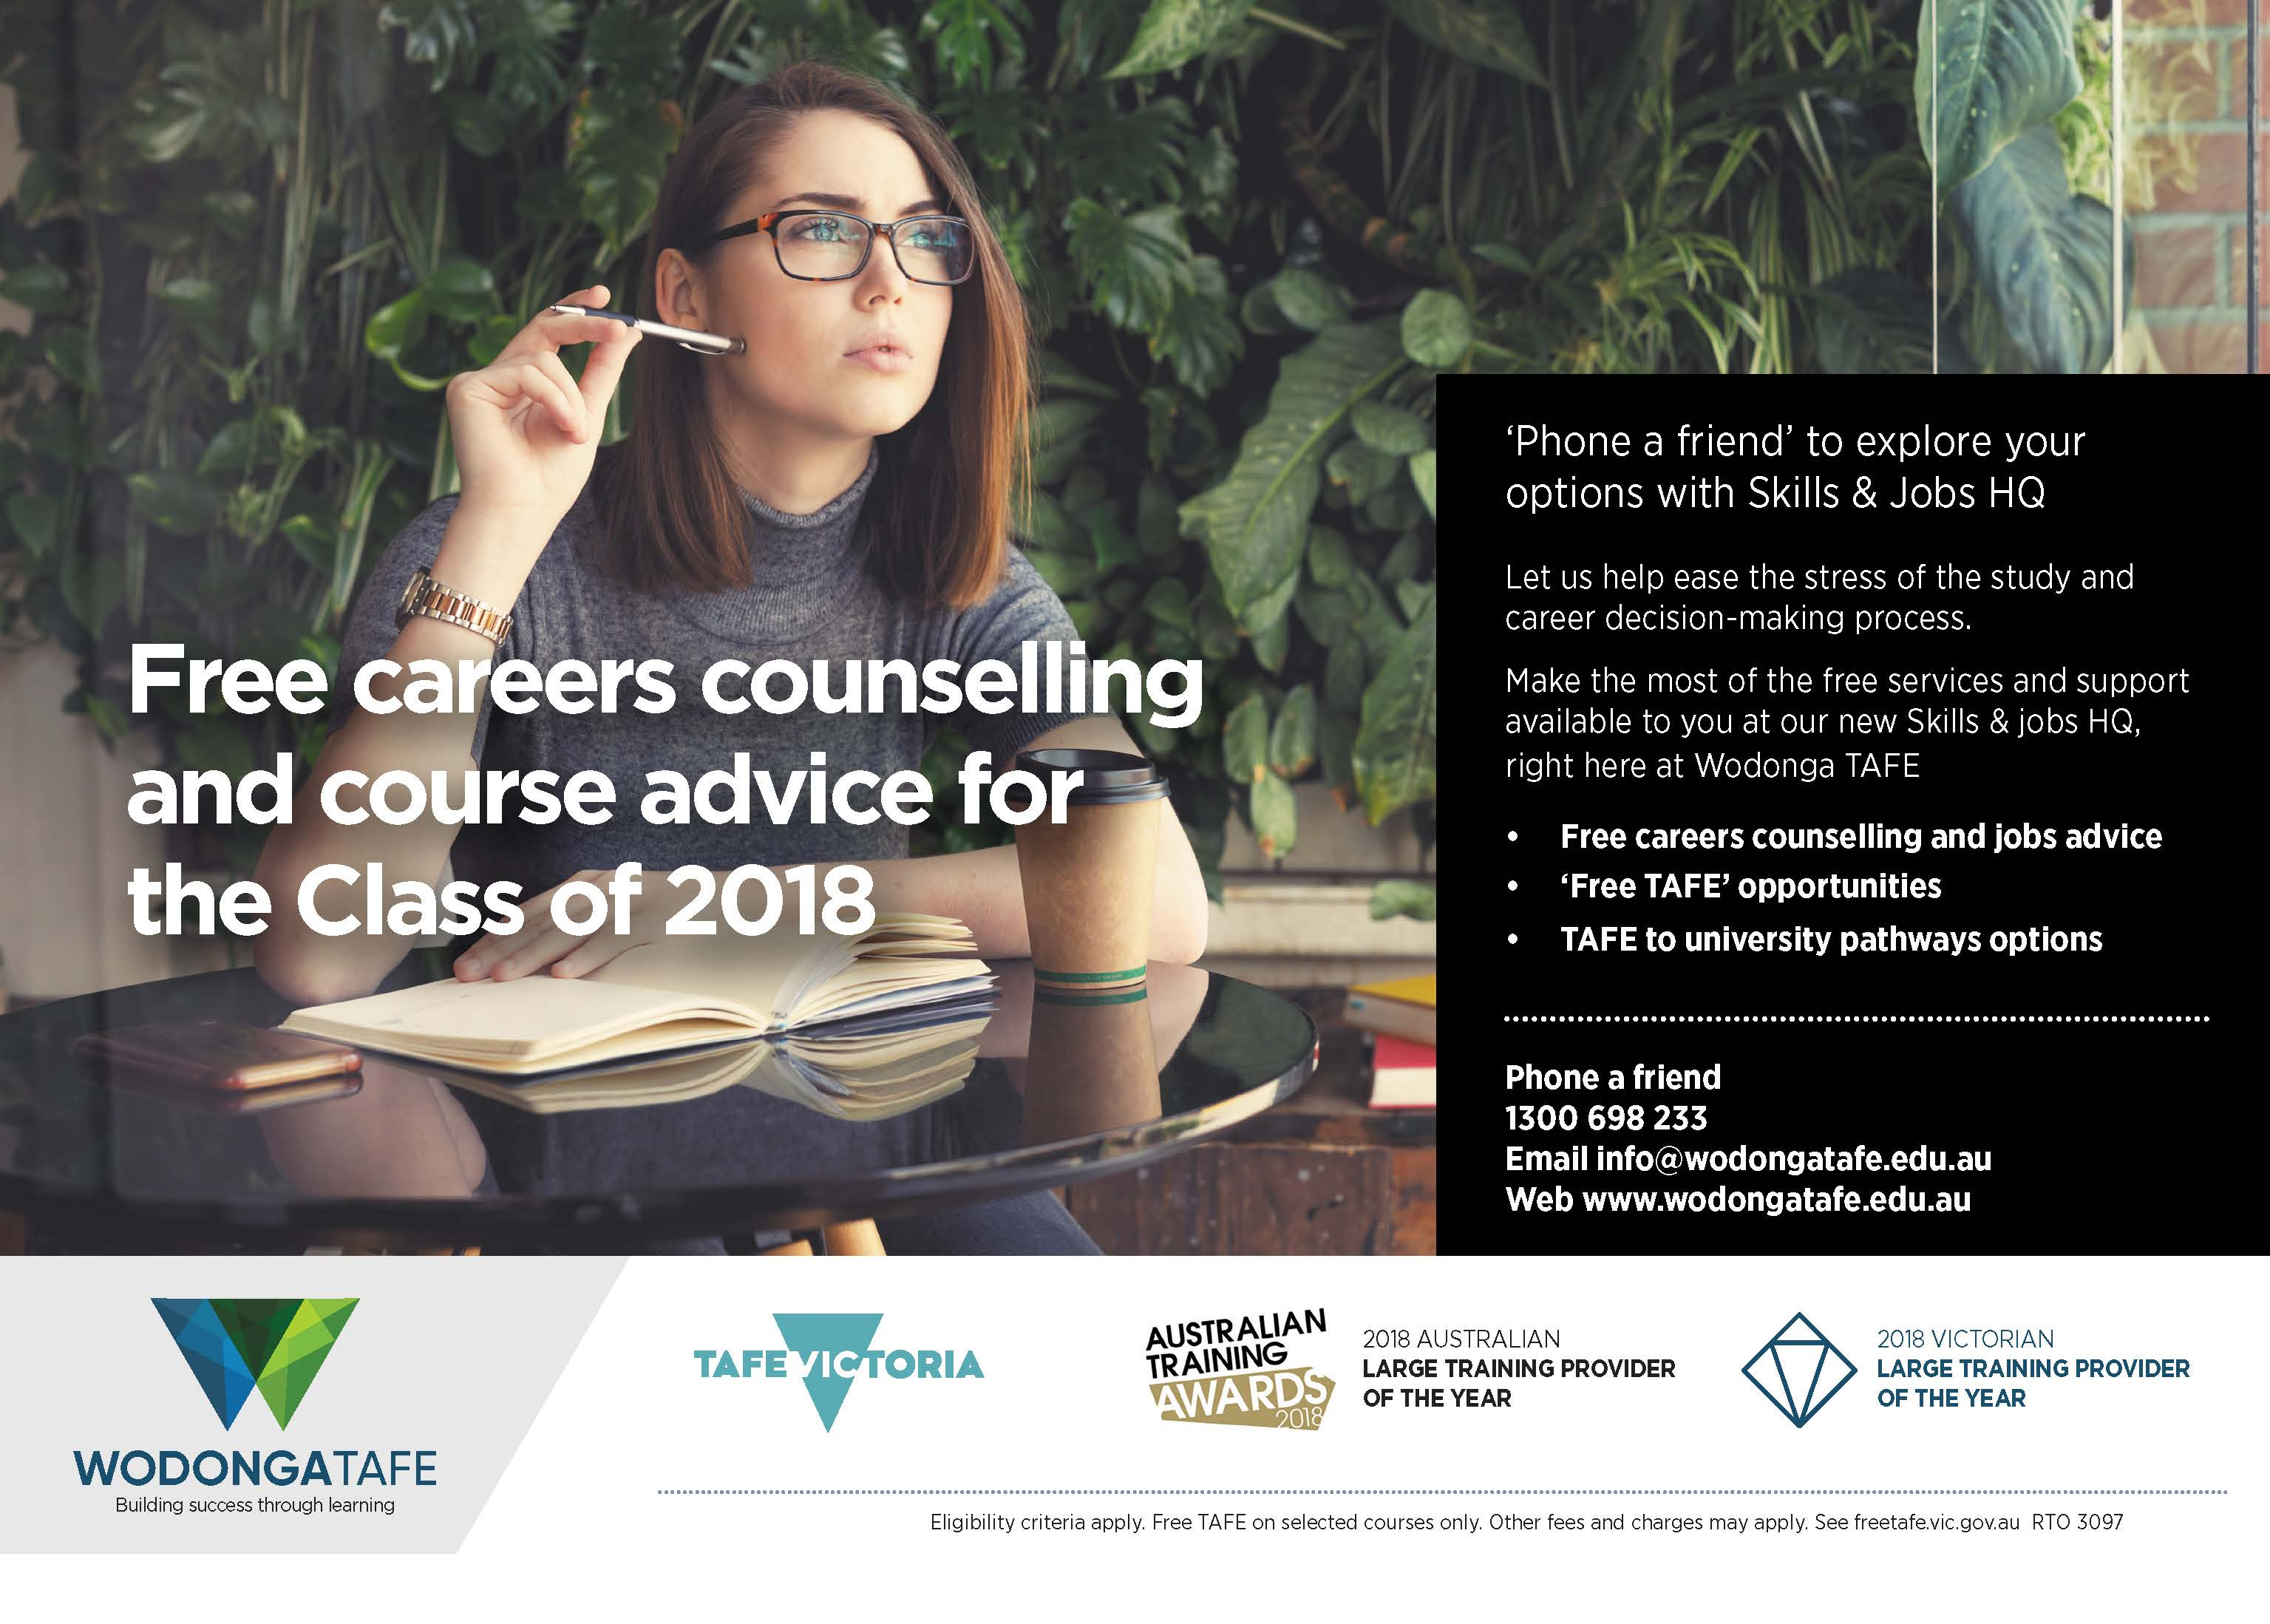 free careers and job counselling available at Wodonga TAFE